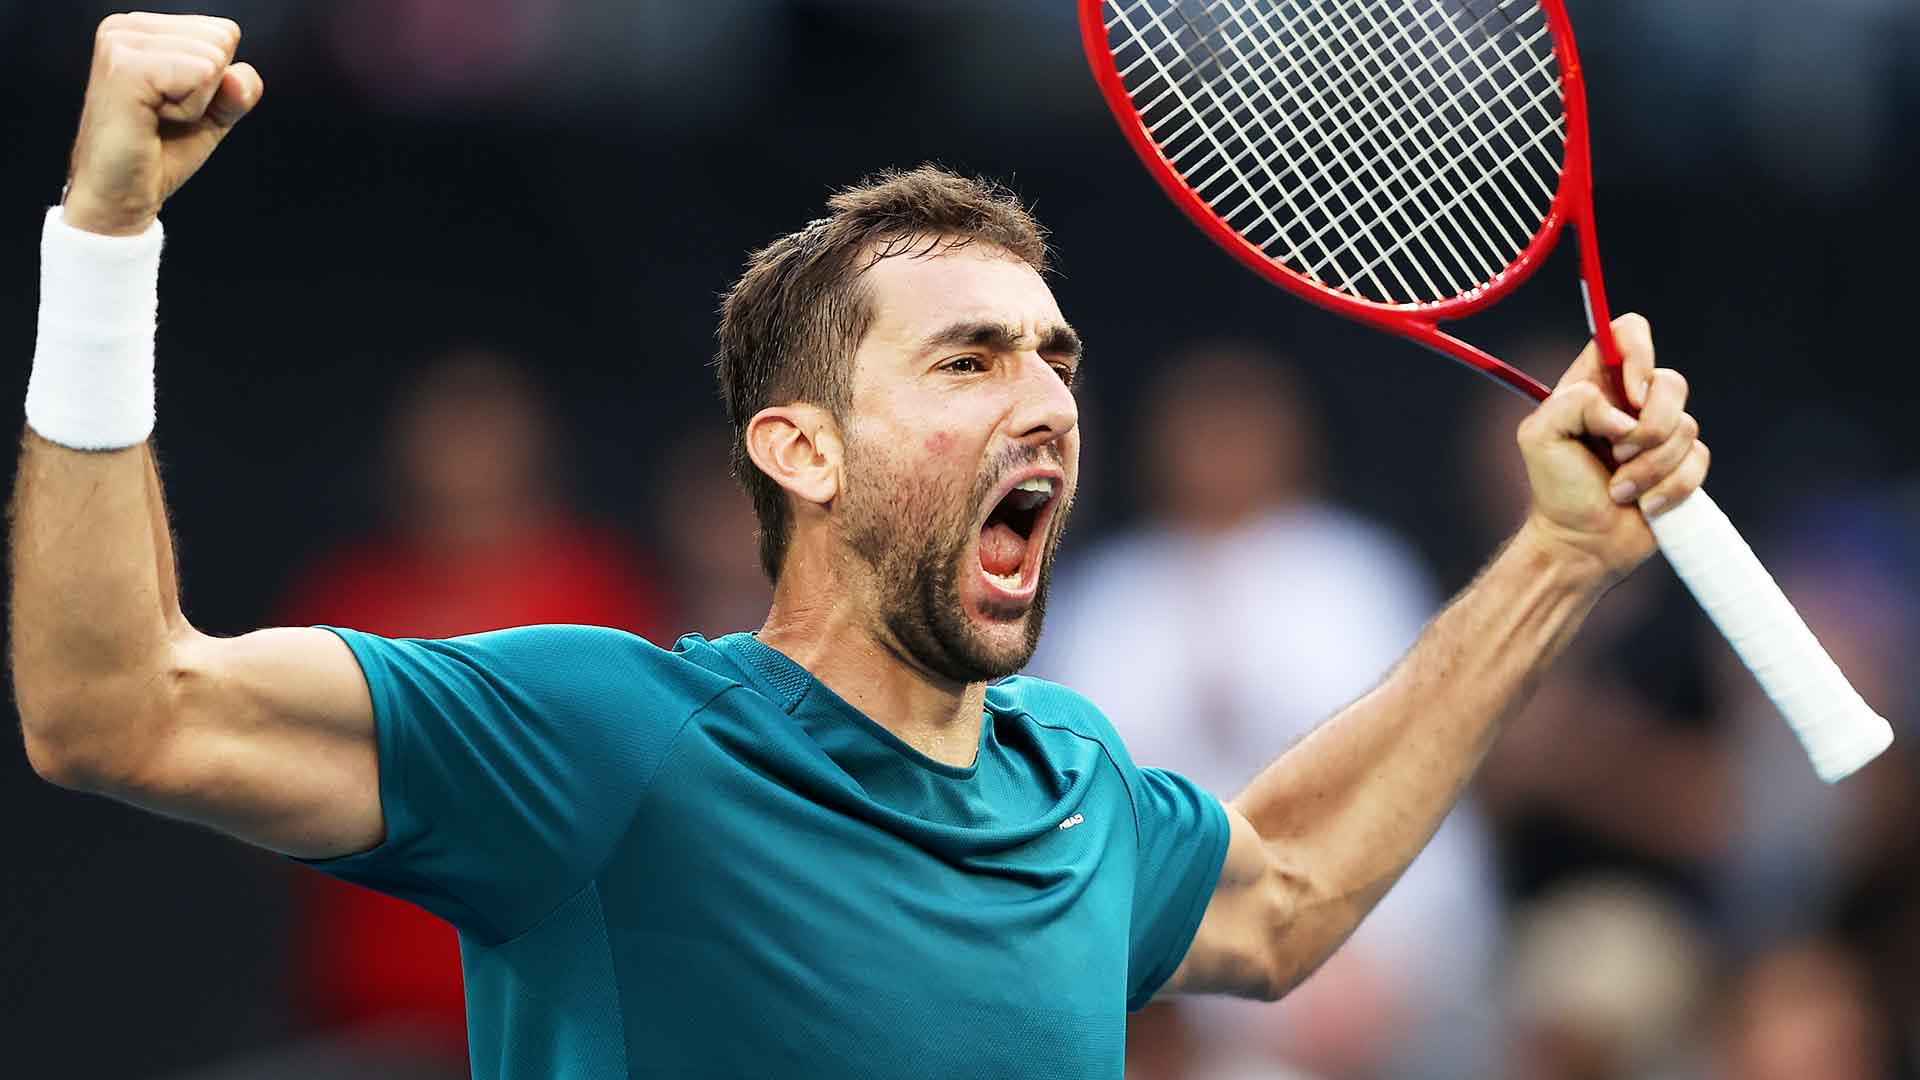 <a href='/en/players/marin-cilic/c977/overview'>Marin Cilic</a> beats <a href='/en/players/roberto-bautista-agut/bd06/overview'>Roberto Bautista Agut</a> in five sets at the <a href='/en/tournaments/australian-open/580/overview'>Australian Open</a> on Friday.